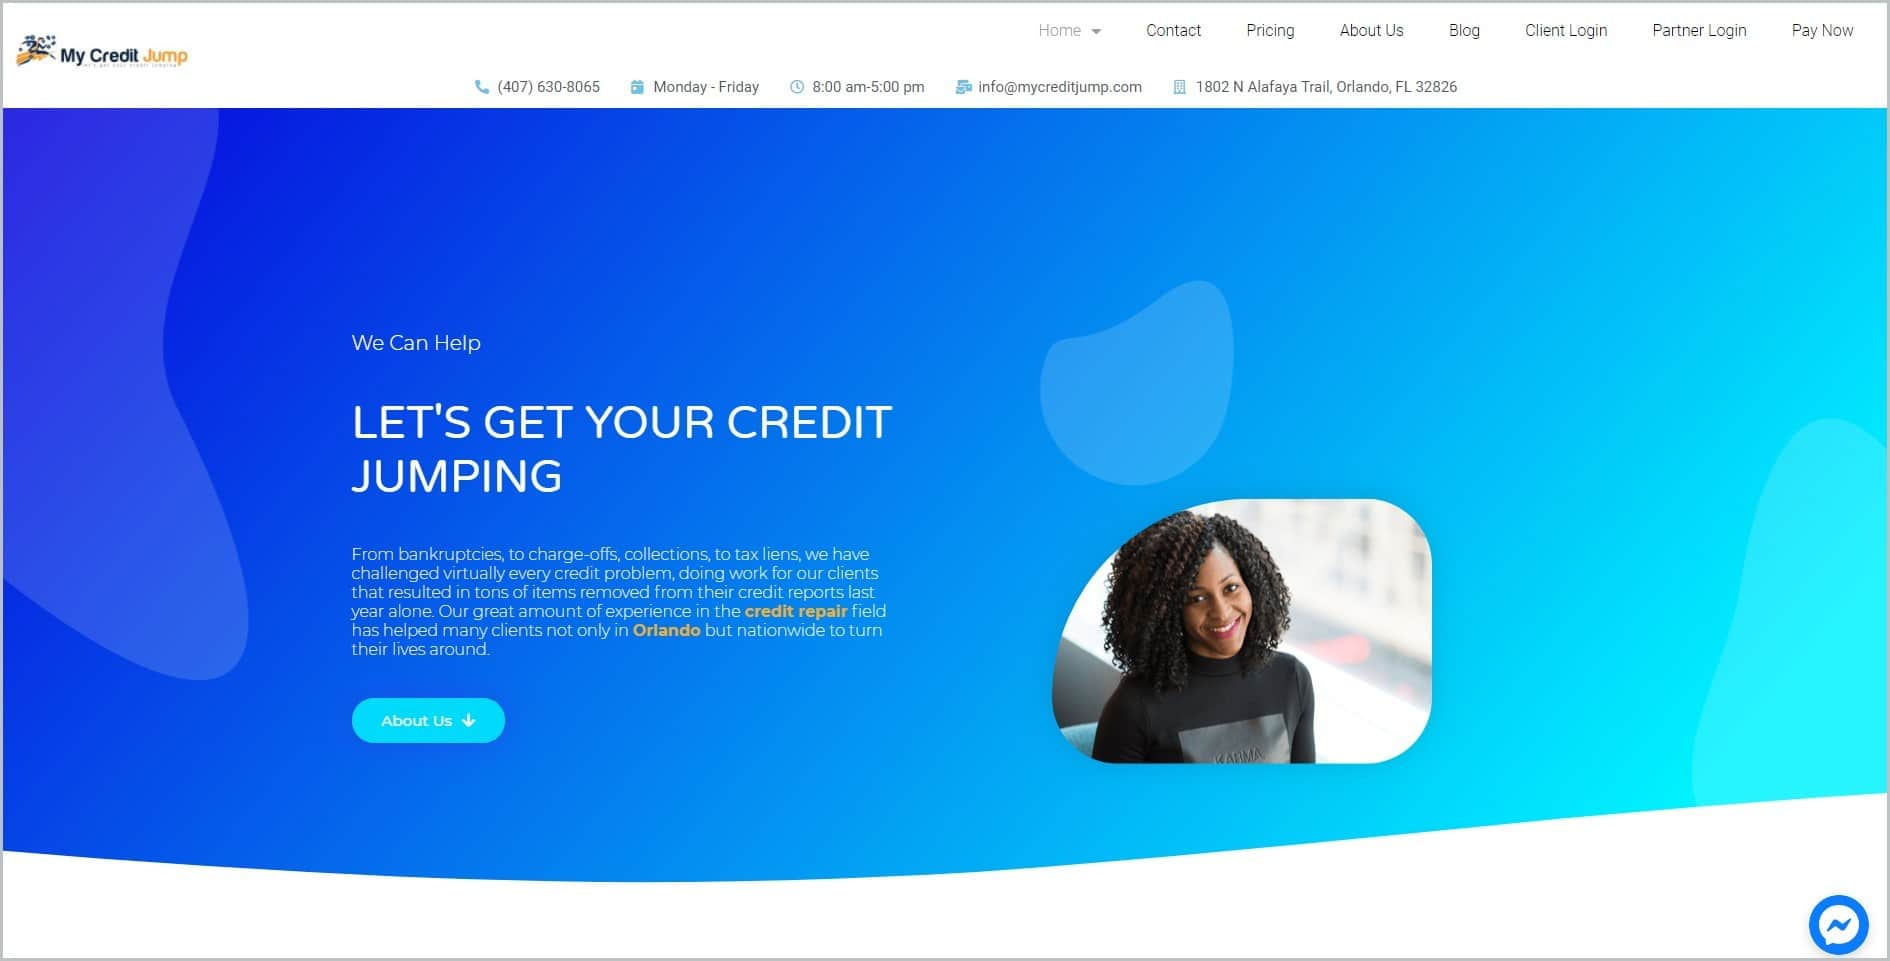 screenshot of My Credit Jump homepage with white header bearing the website's name and main navigation menu, showcasing an image of a smiling black woman against a blue background